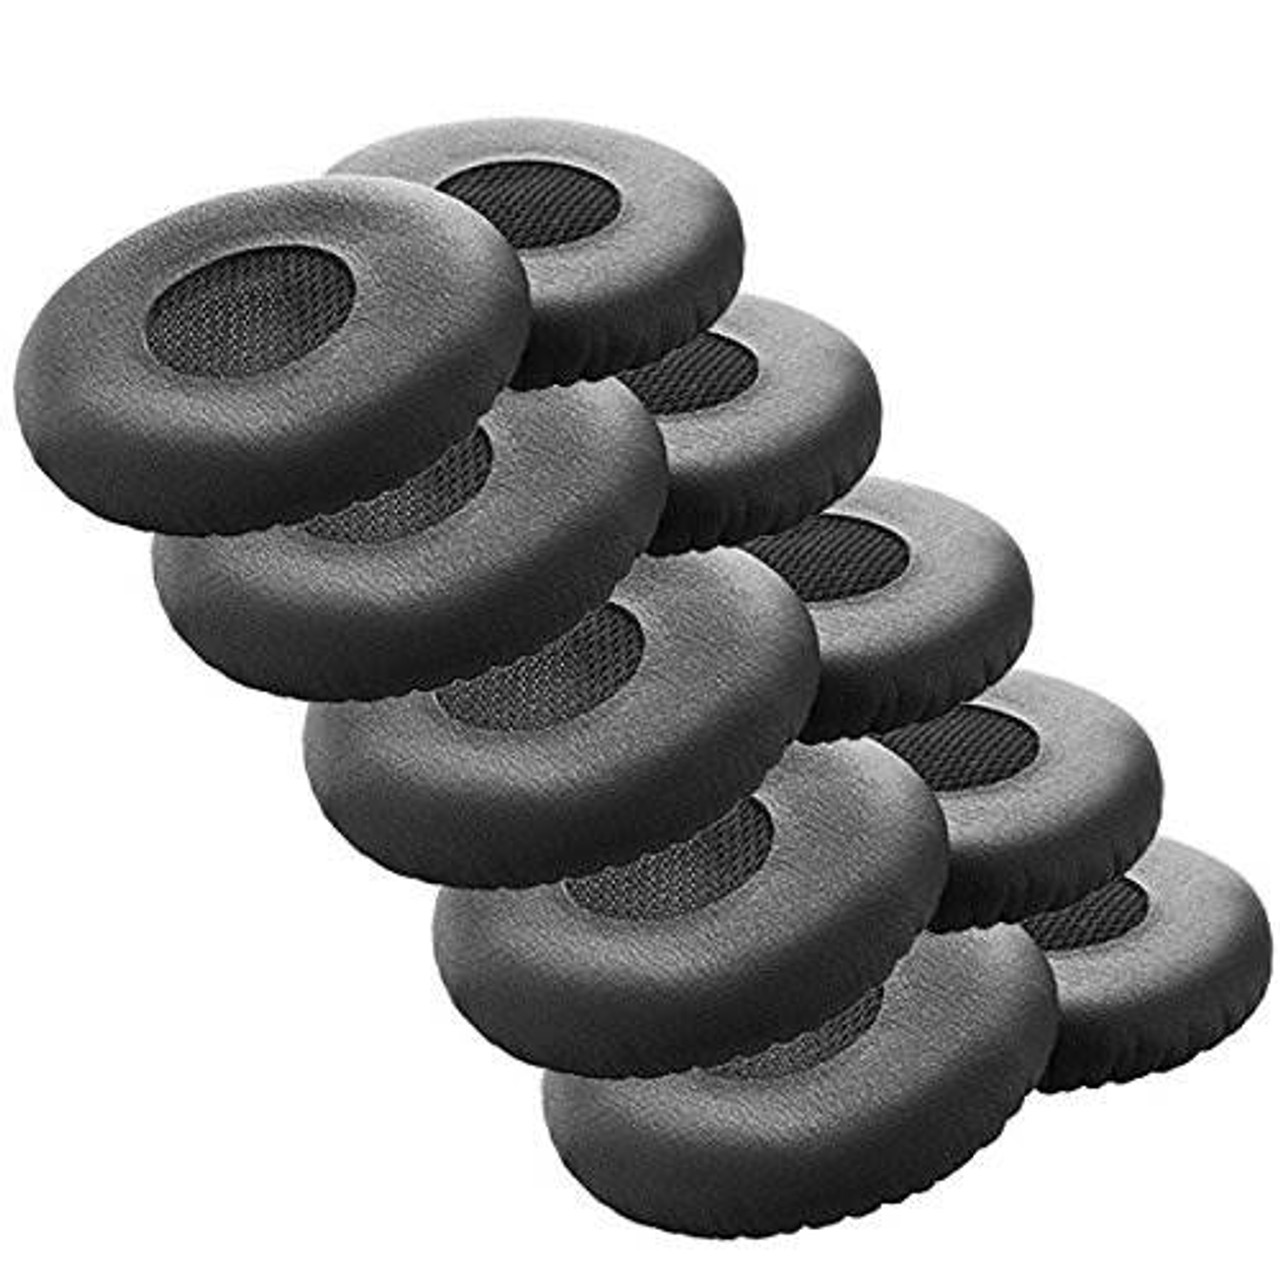 Image for Jabra Evolve 20-65 Leather Ear Cushion - 10 Pack CX Computer Superstore